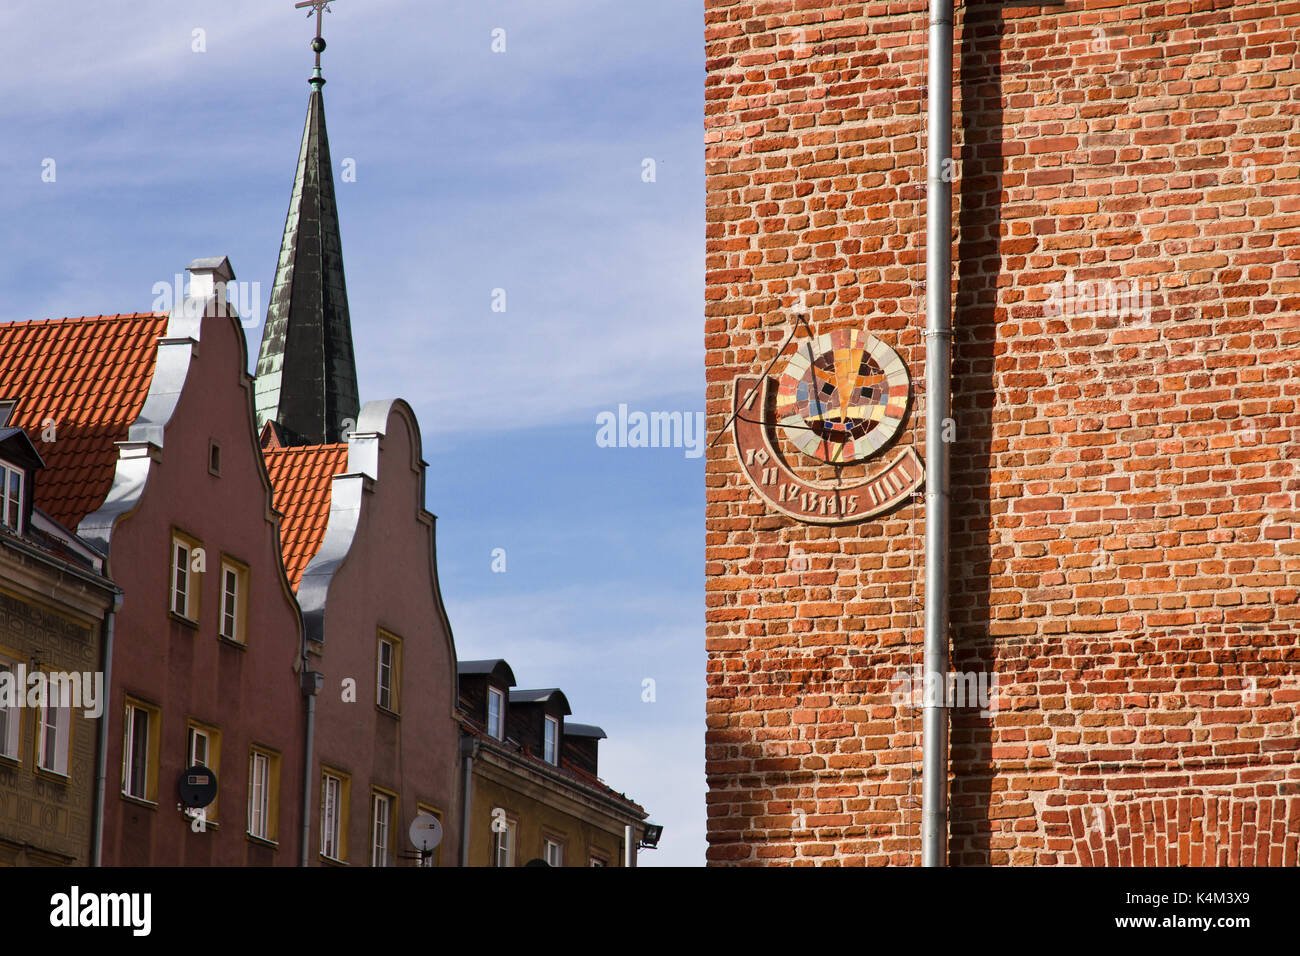 Sundial on the brick wall of Old Town Hall in Olsztyn. Poland. - Stock Image